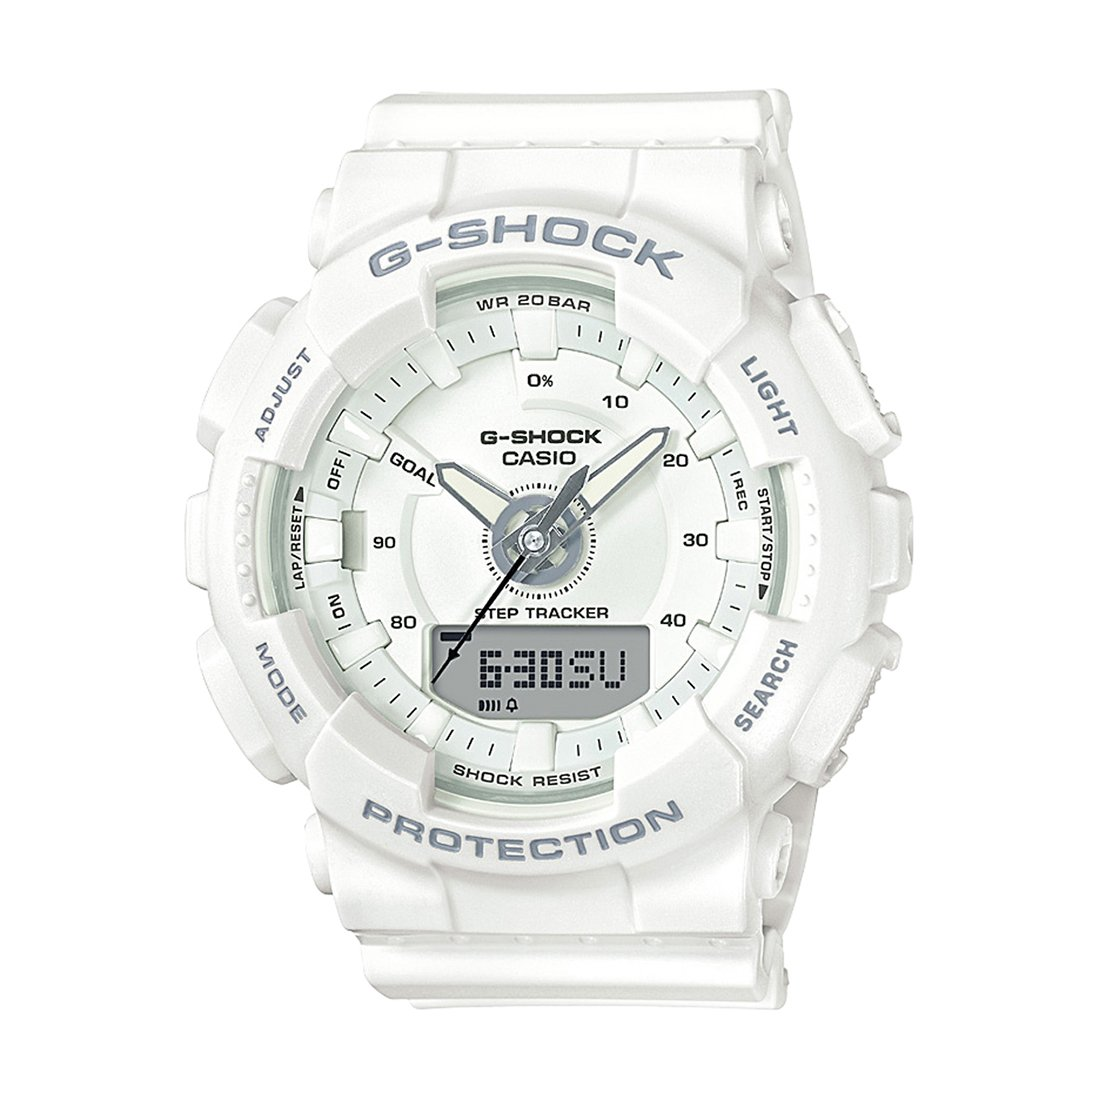 d1dcf2268b89 Buy Casio G-Shock S-Series Analog-Digital White Dial Women s Watch -  GMA-S130-7ADR (G805) Online at Low Prices in India - Amazon.in